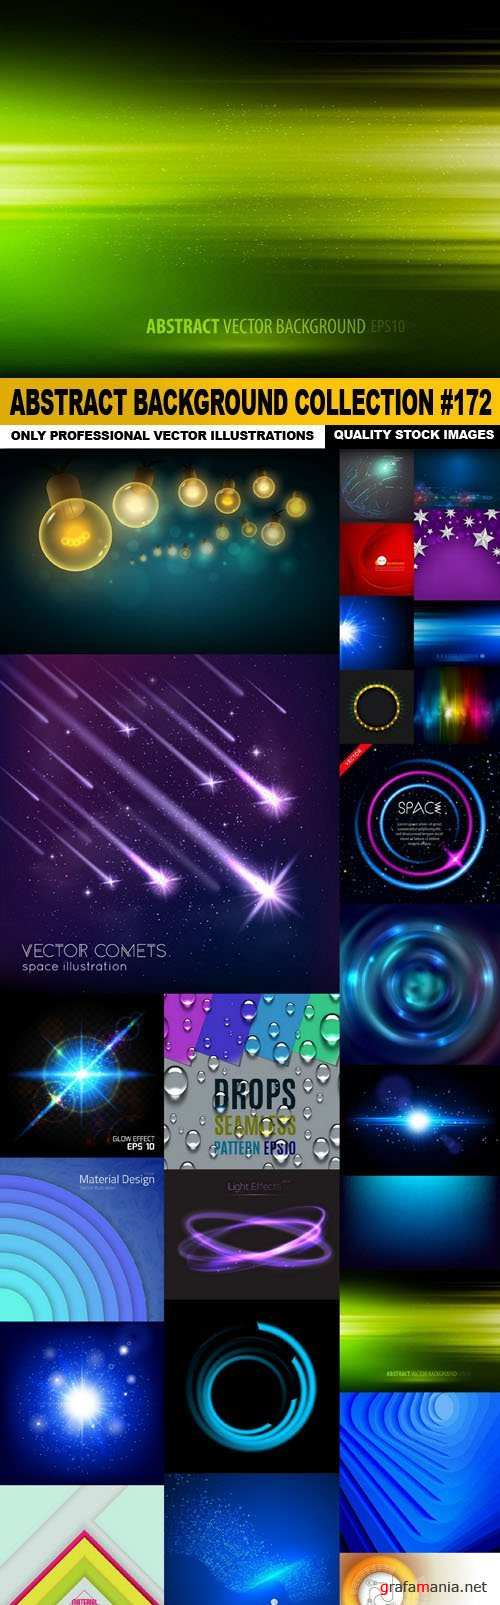 Abstract Background Collection #172 - 25 Vector